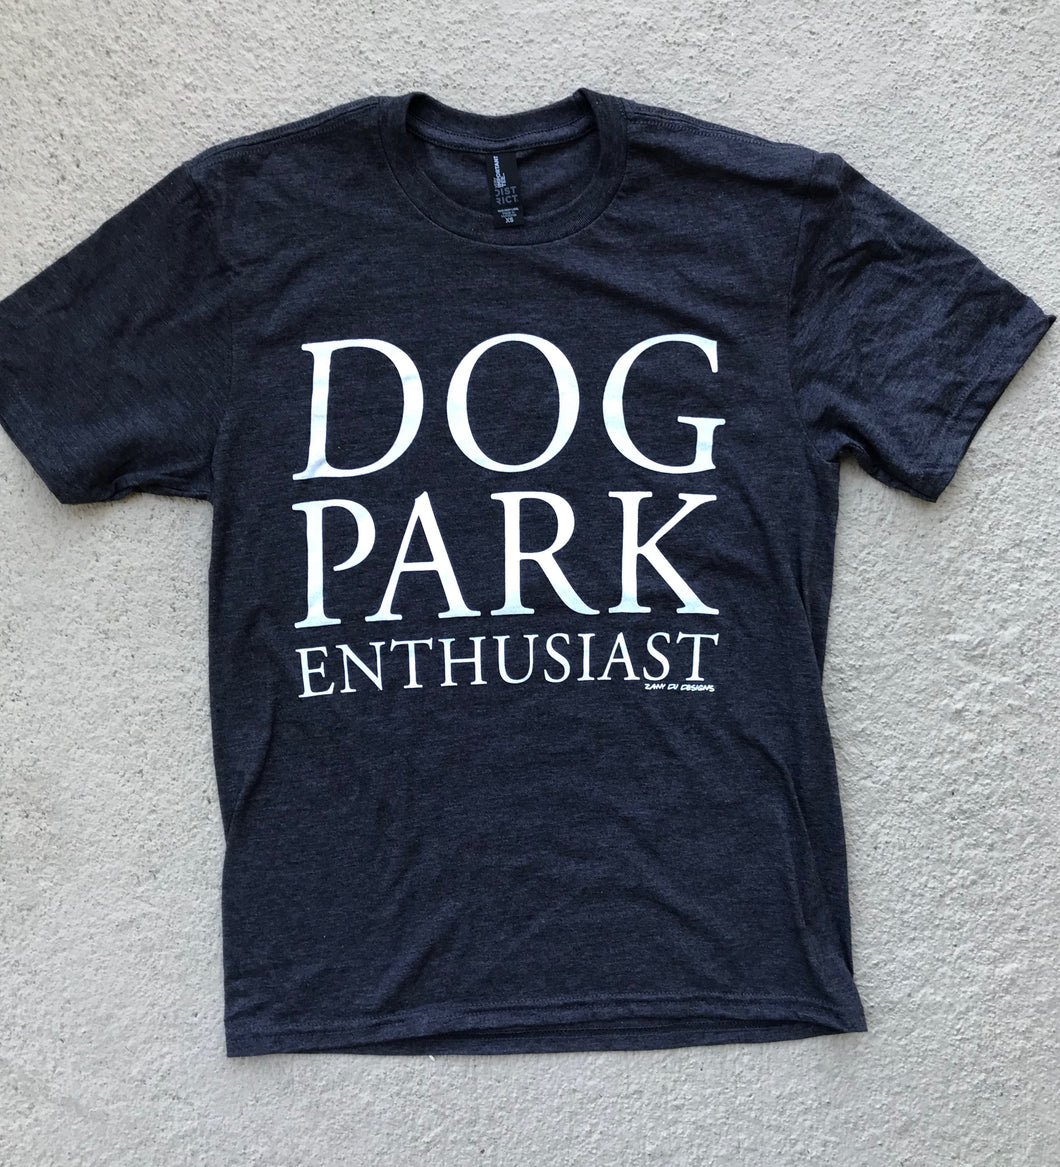 SALE Dog Park Enthusiast Heather Charcoal Grey UNISEX Tee SSS